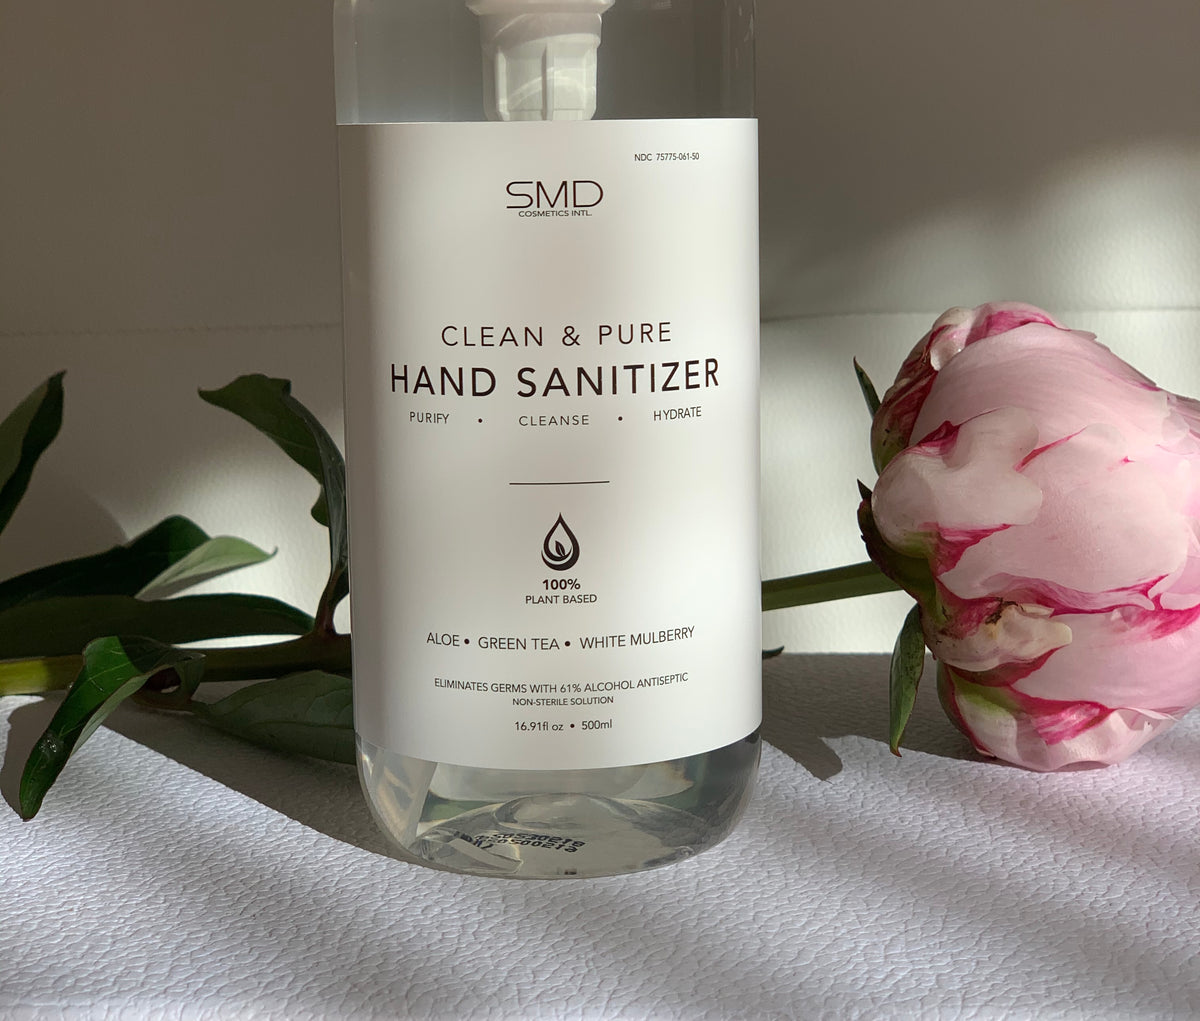 SMD Cosmetics' Clean and Pure Hand Sanitizer